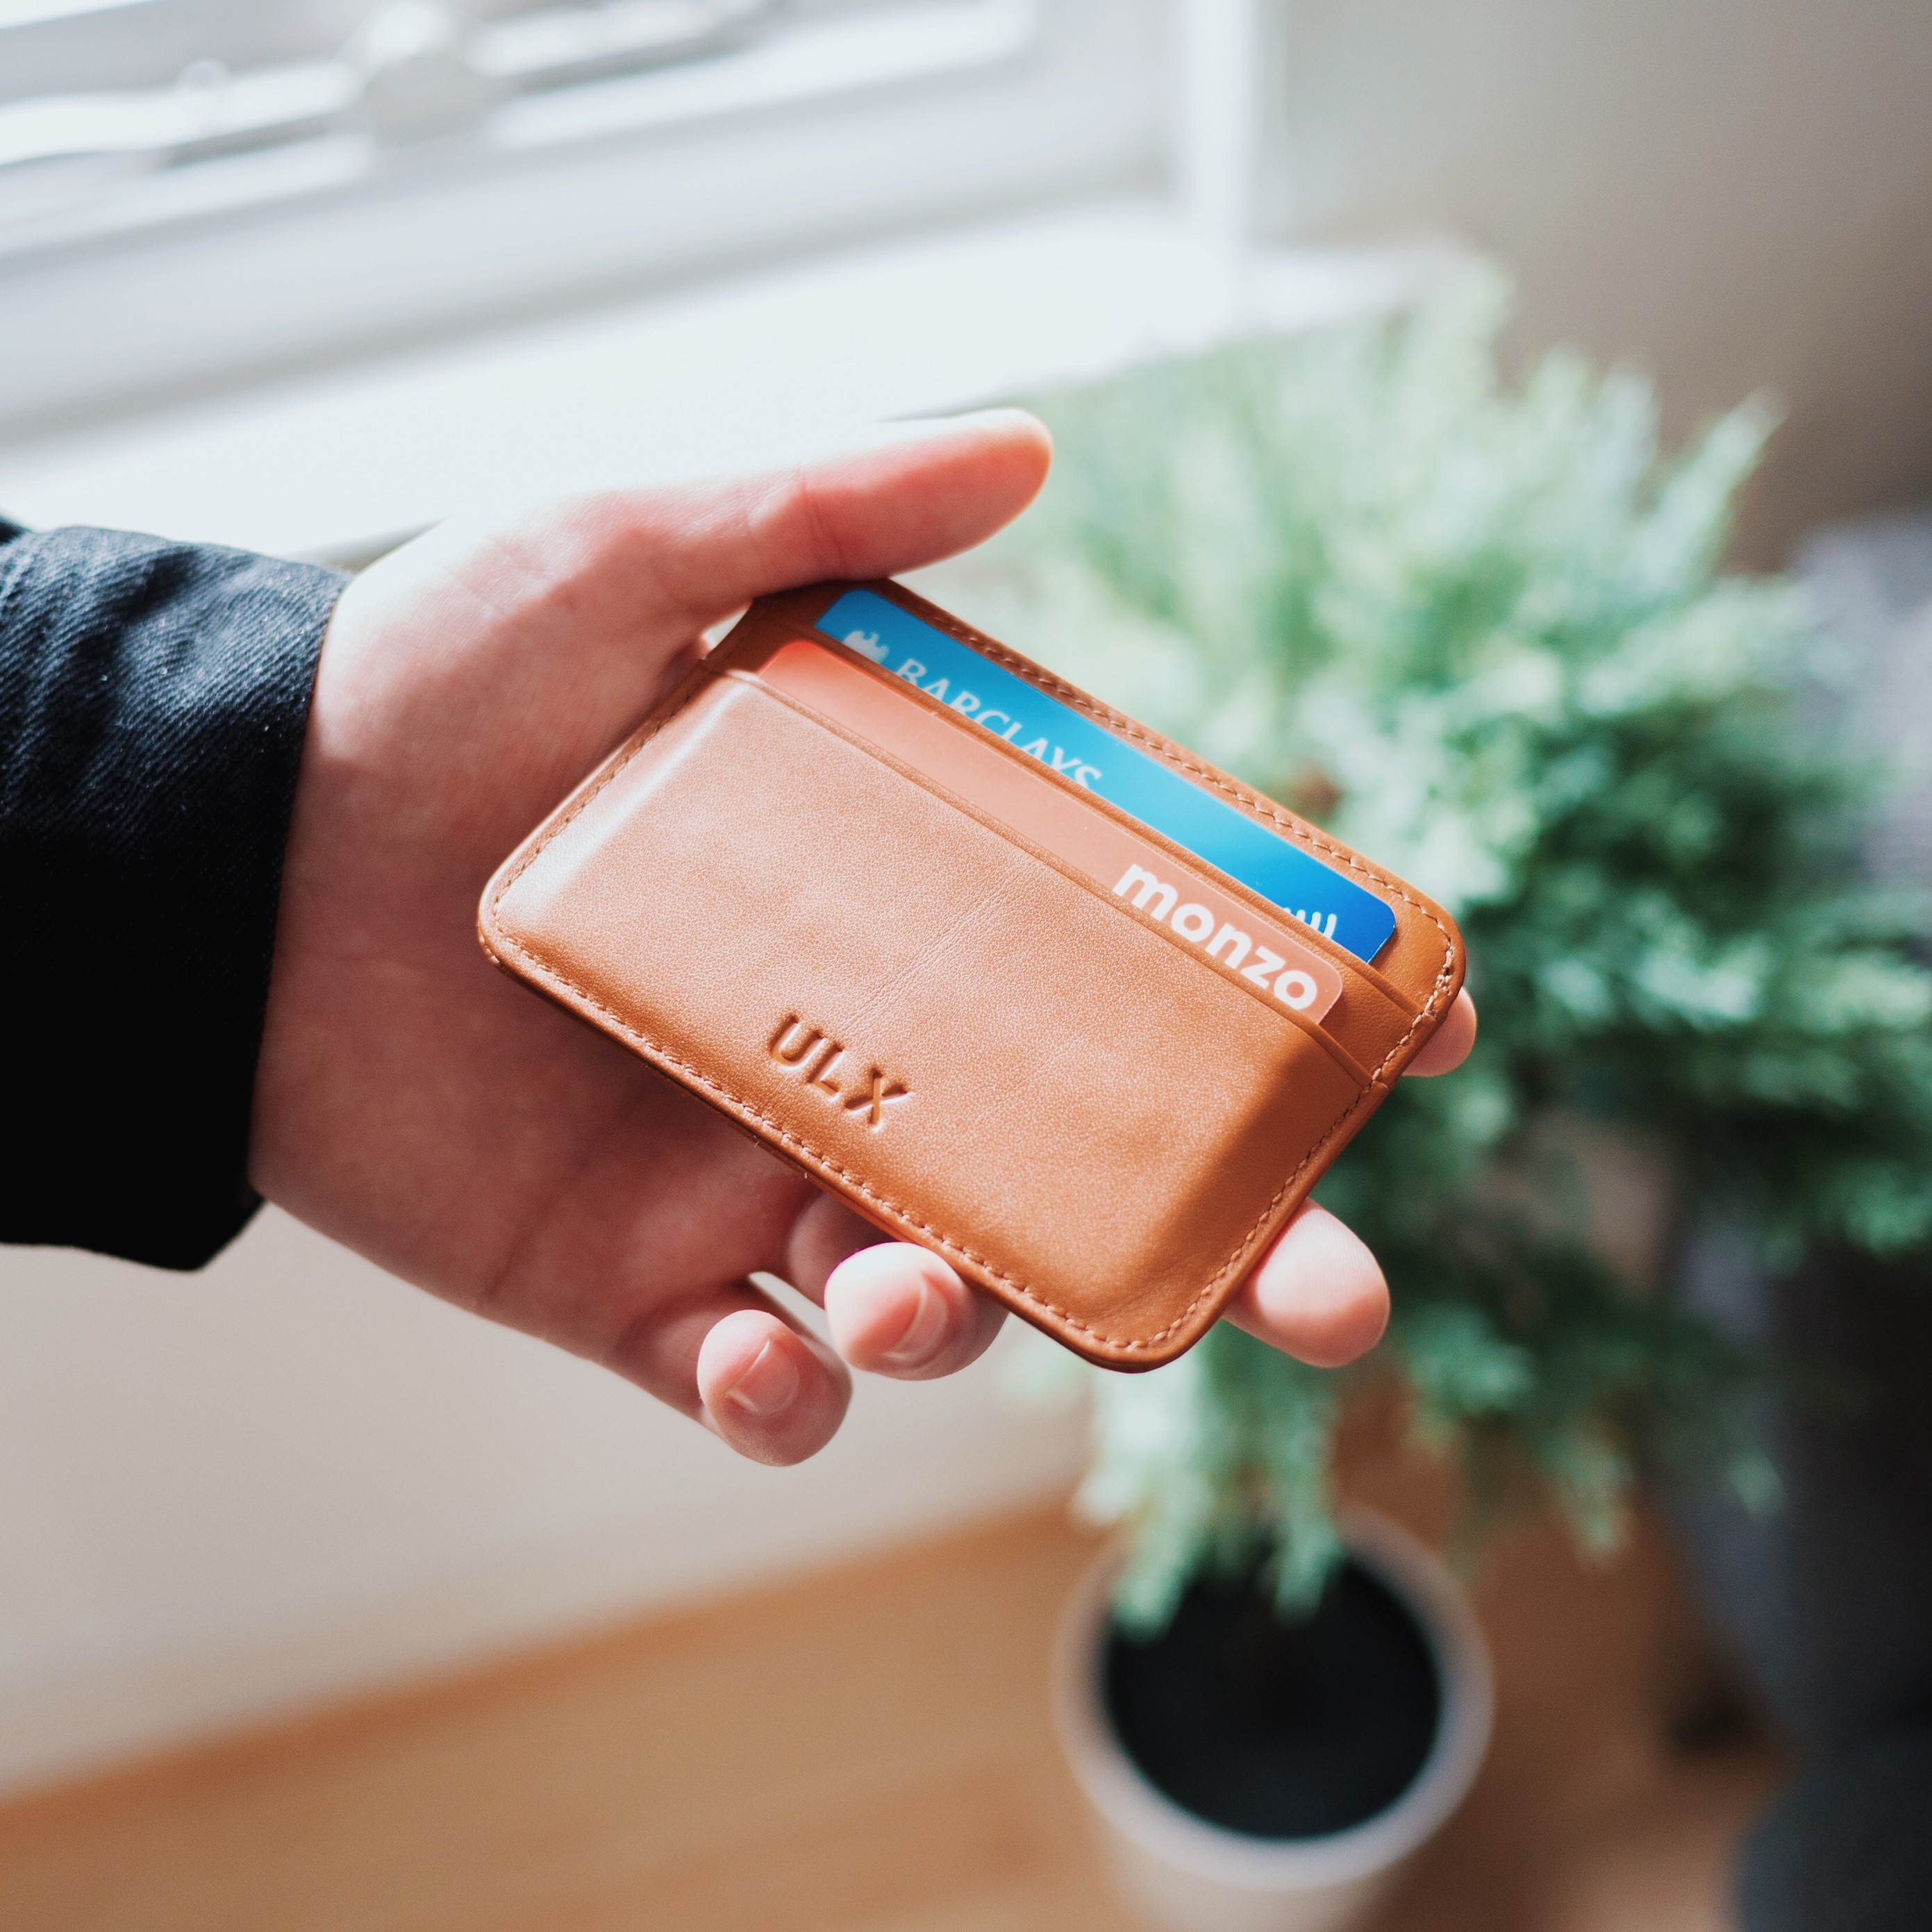 Man holding a leather wallet containing a monzo and barclays card